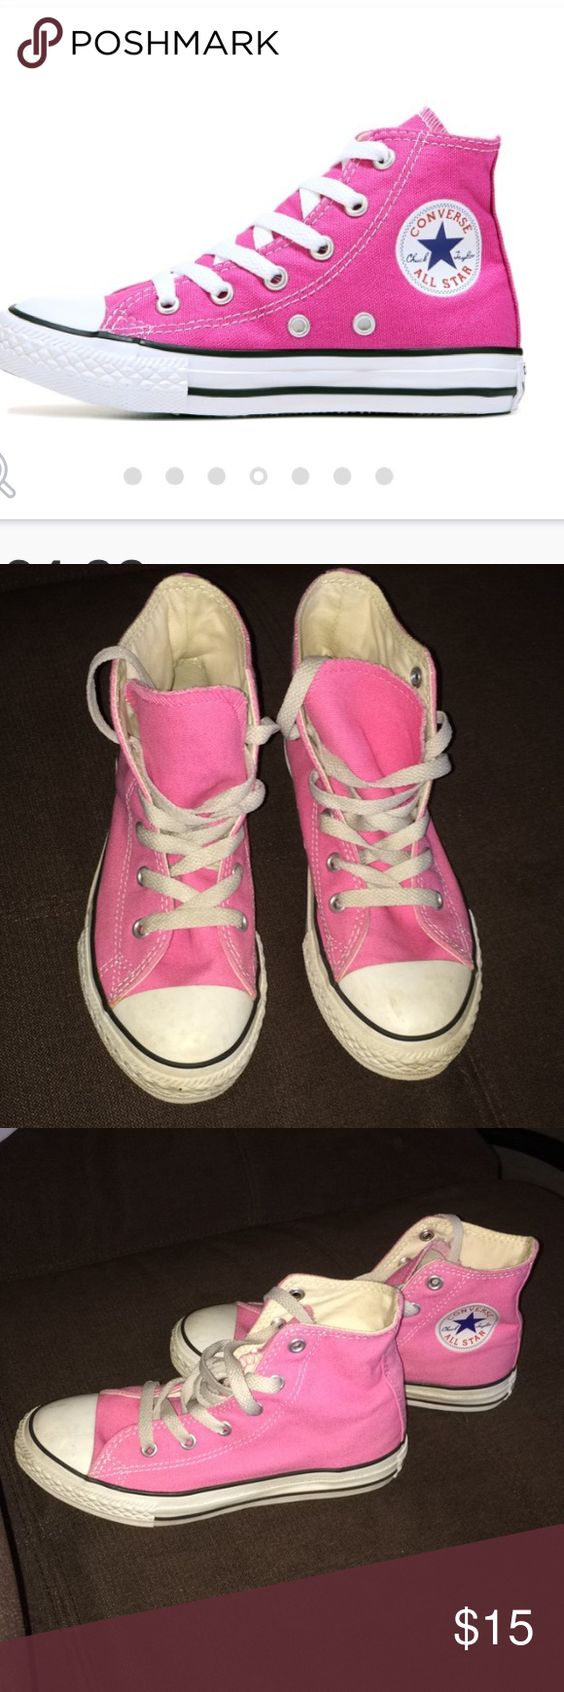 Hot pink converse all stars! Excellent used condition! Converse Shoes Sneakers